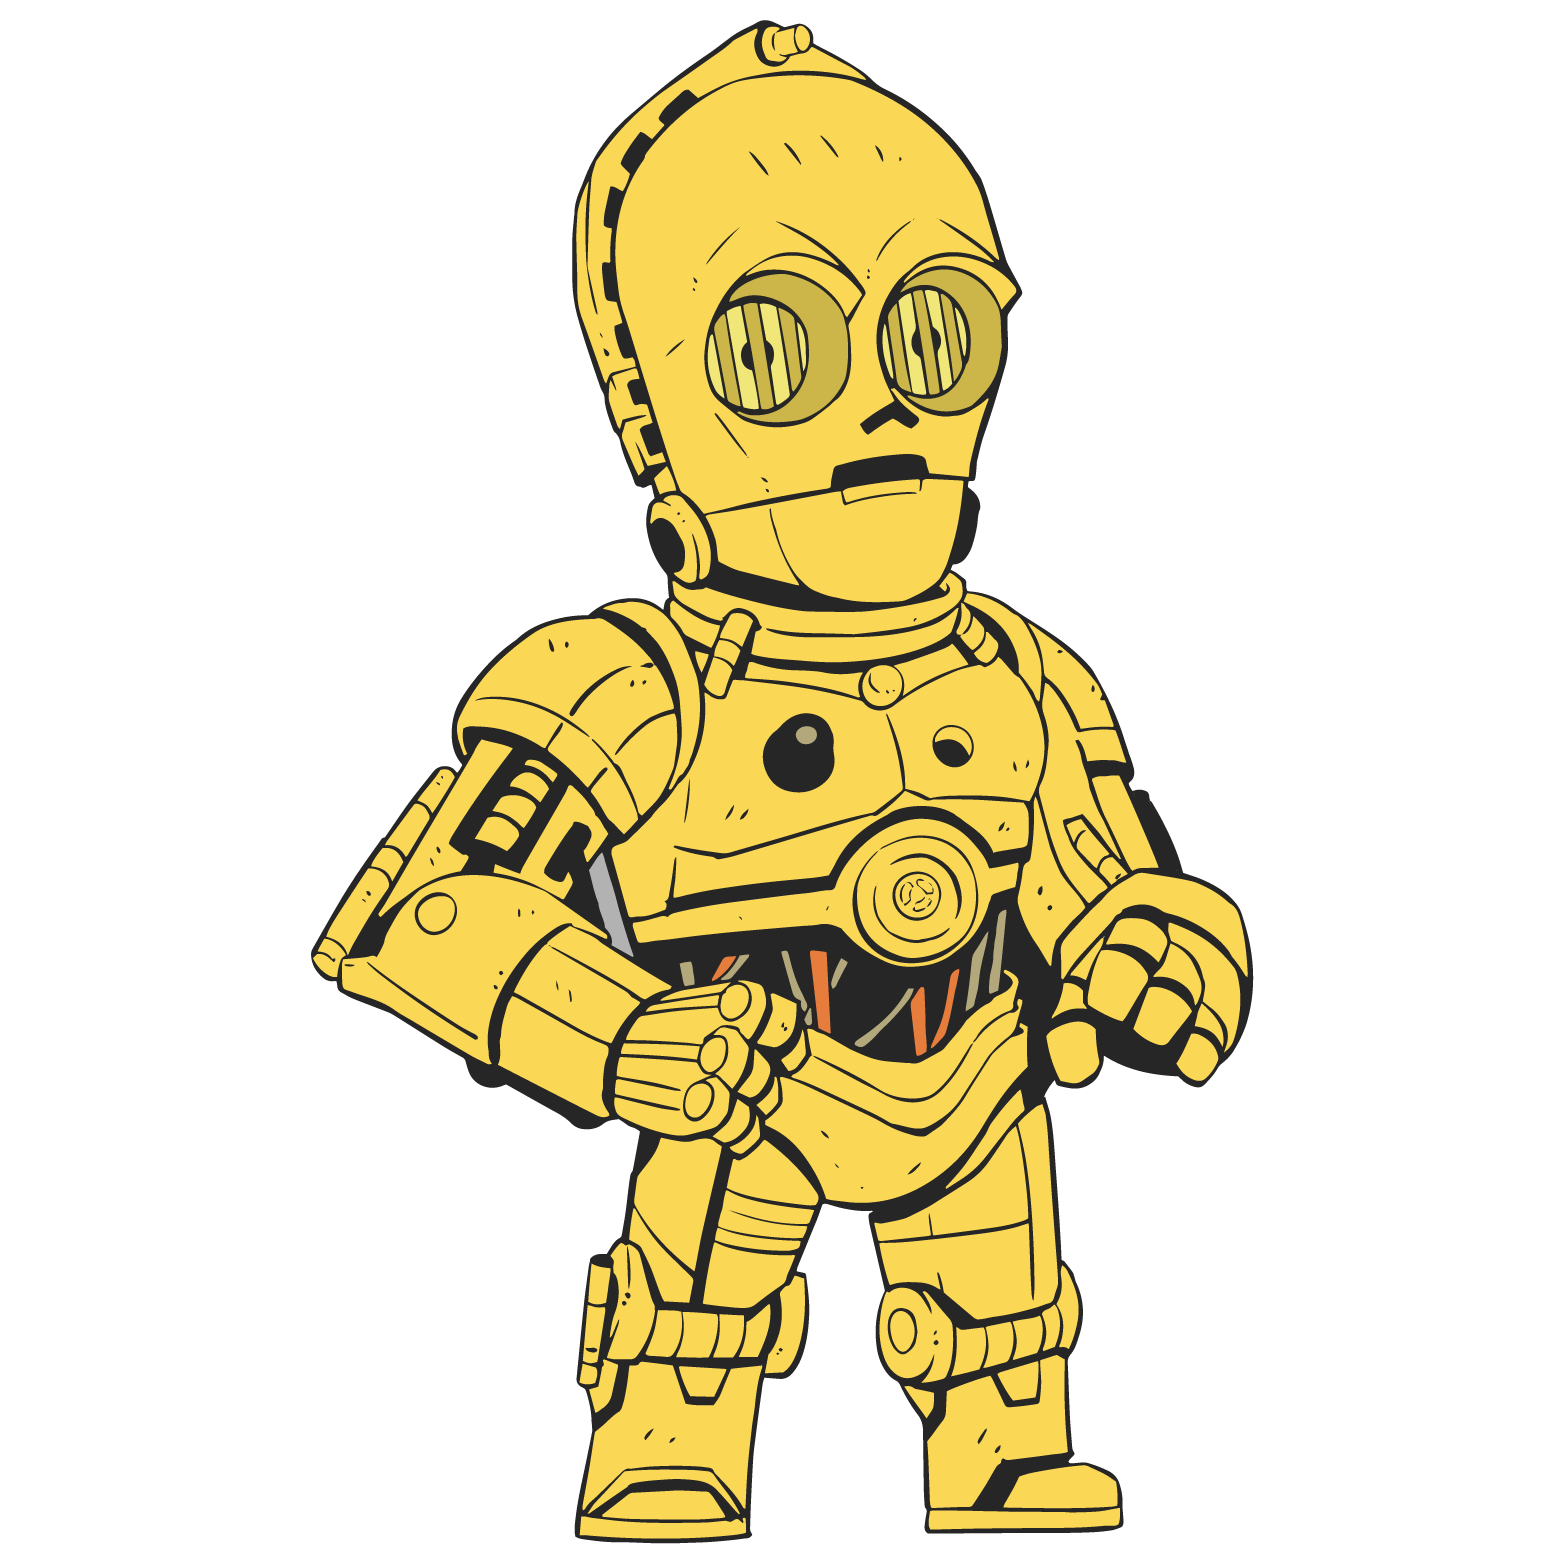 Clipart of star wars characters image royalty free download Pin Trading Program - Star Wars Celebration image royalty free download